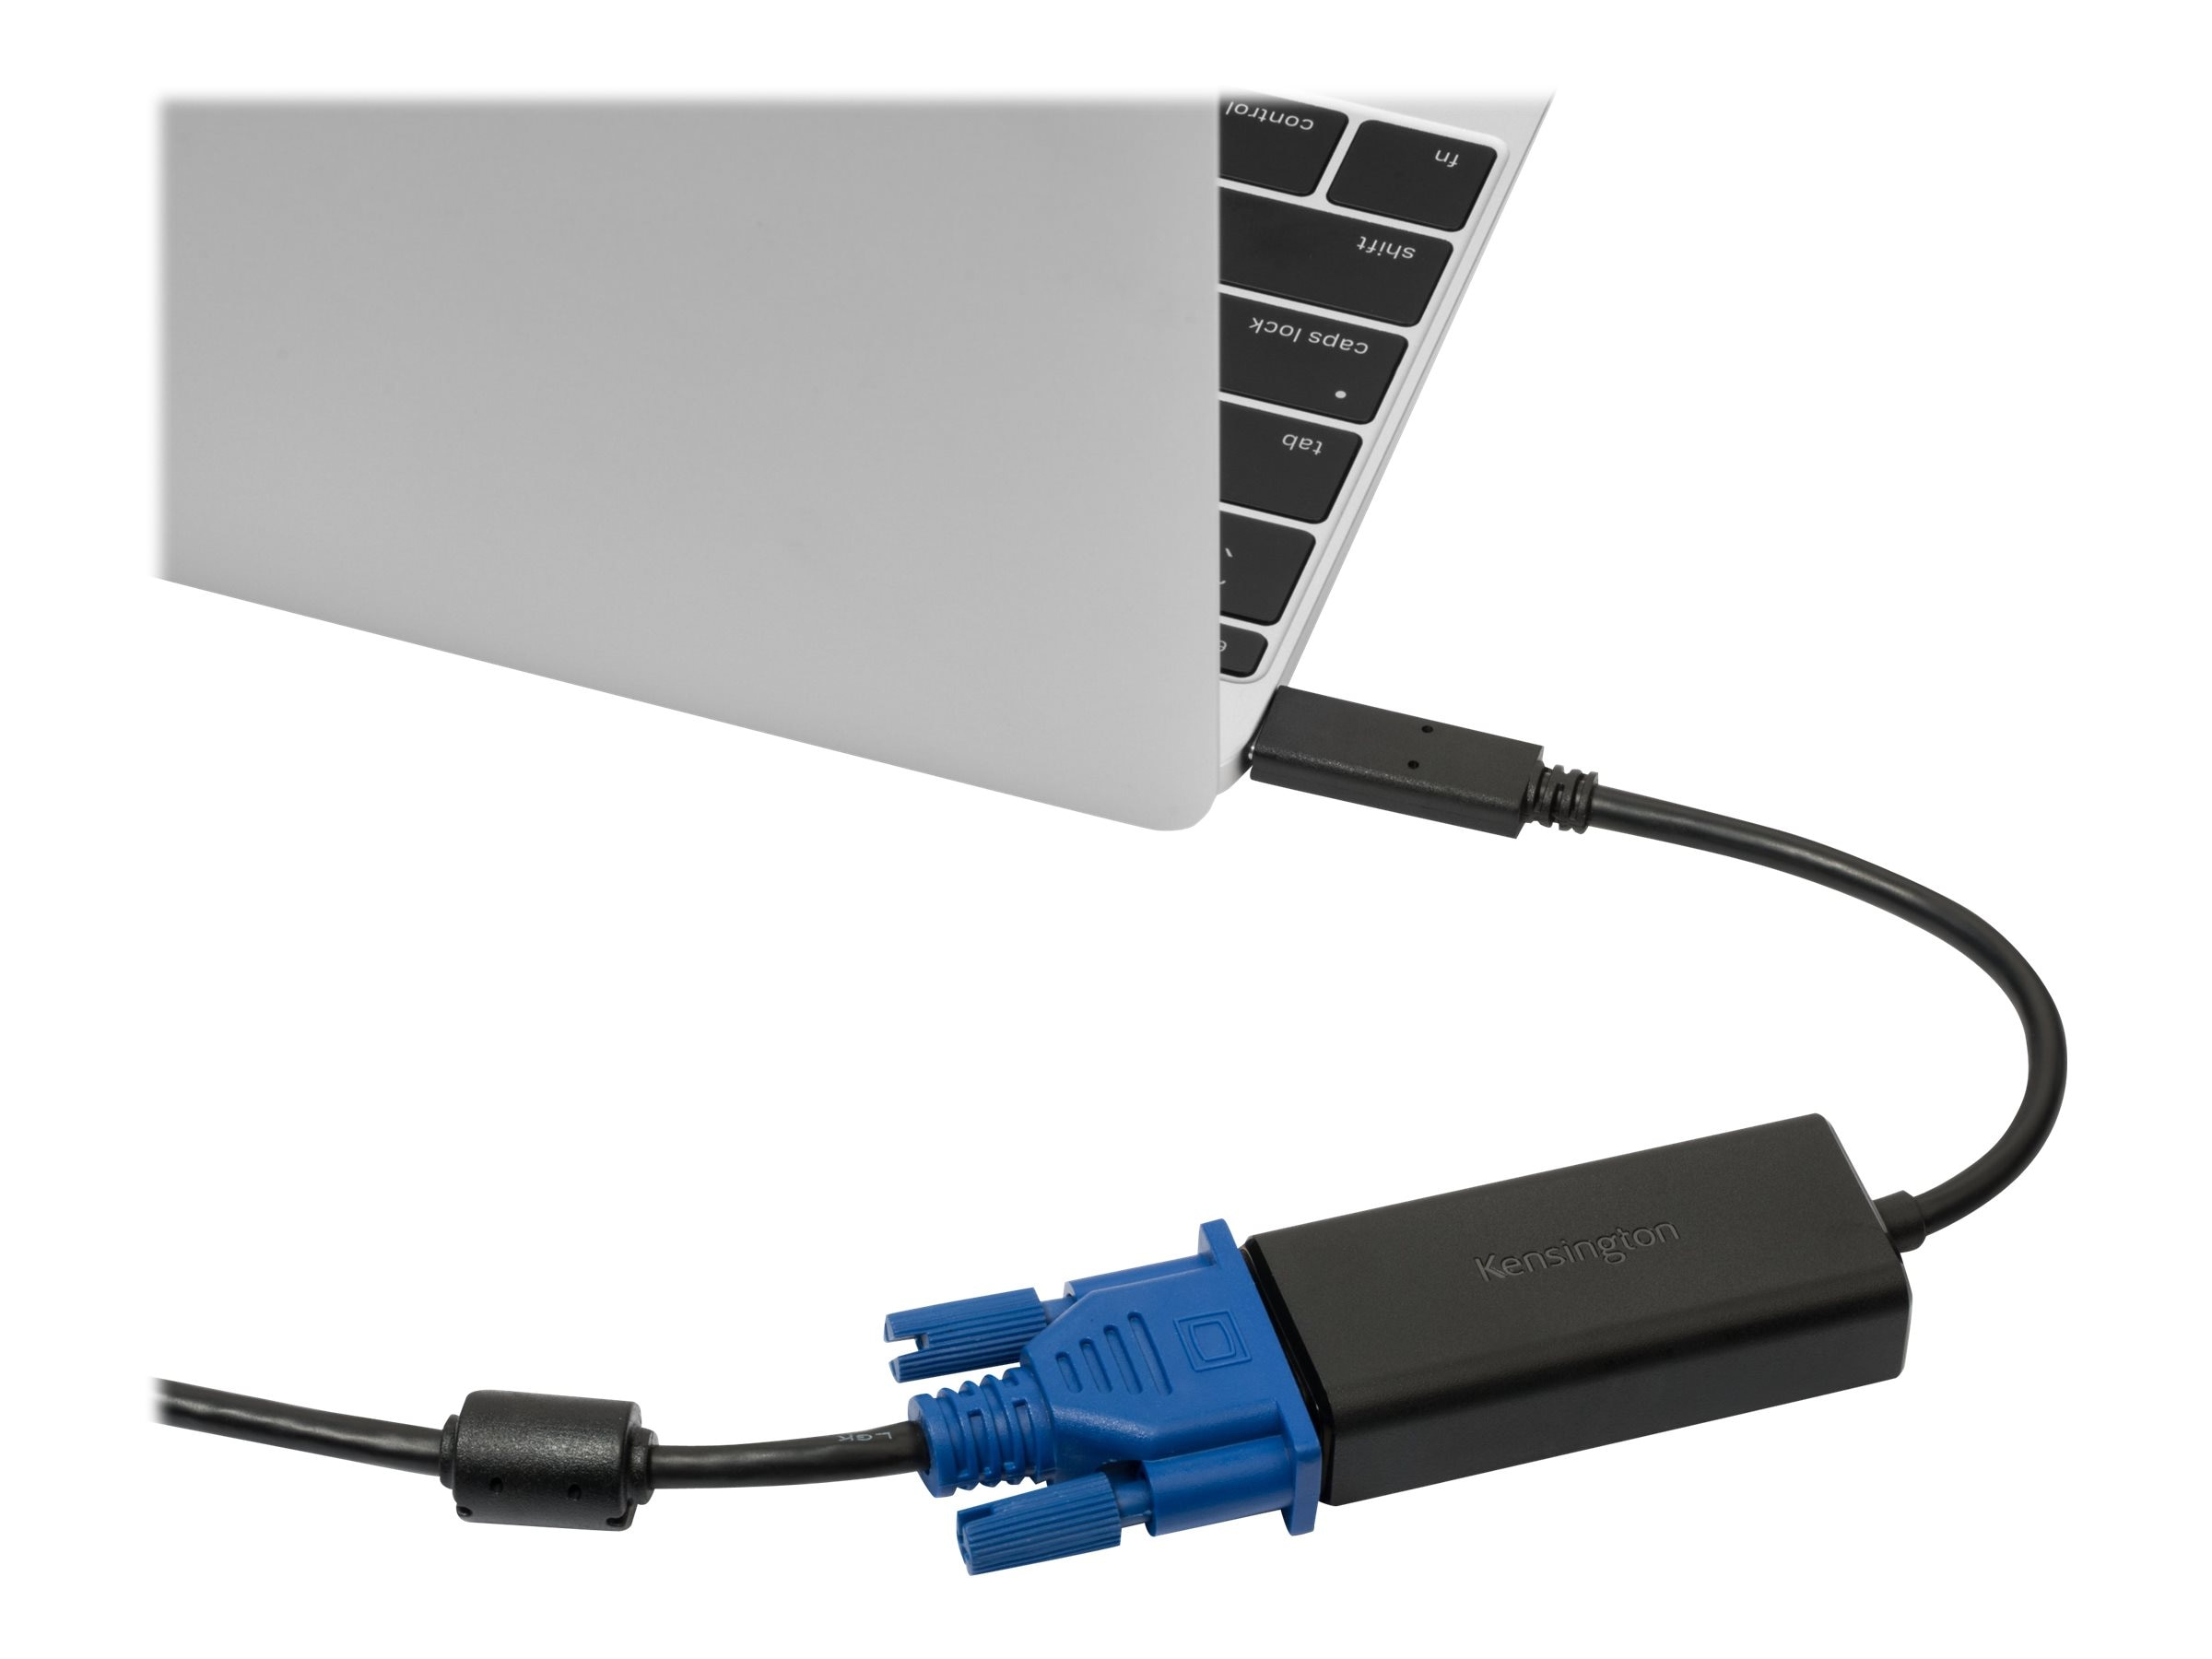 Kensington USB Type C TO VGA Adapter